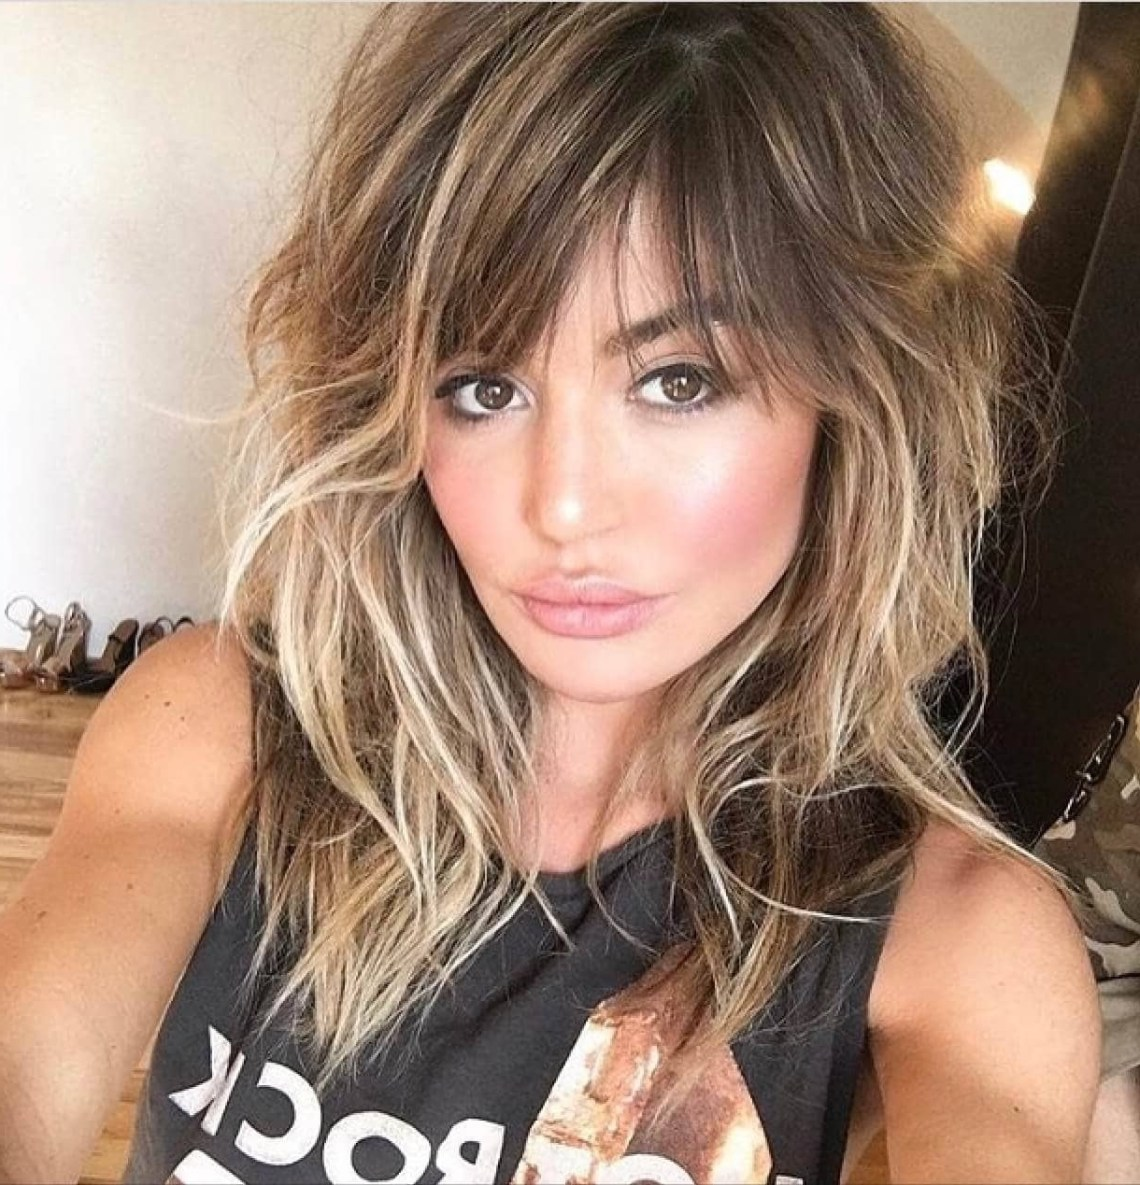 50 Breezy Hairstyles With Bangs To Make You Shine In 2020 10+ Stylish Medium Hairstyles With Bangs And Highlights